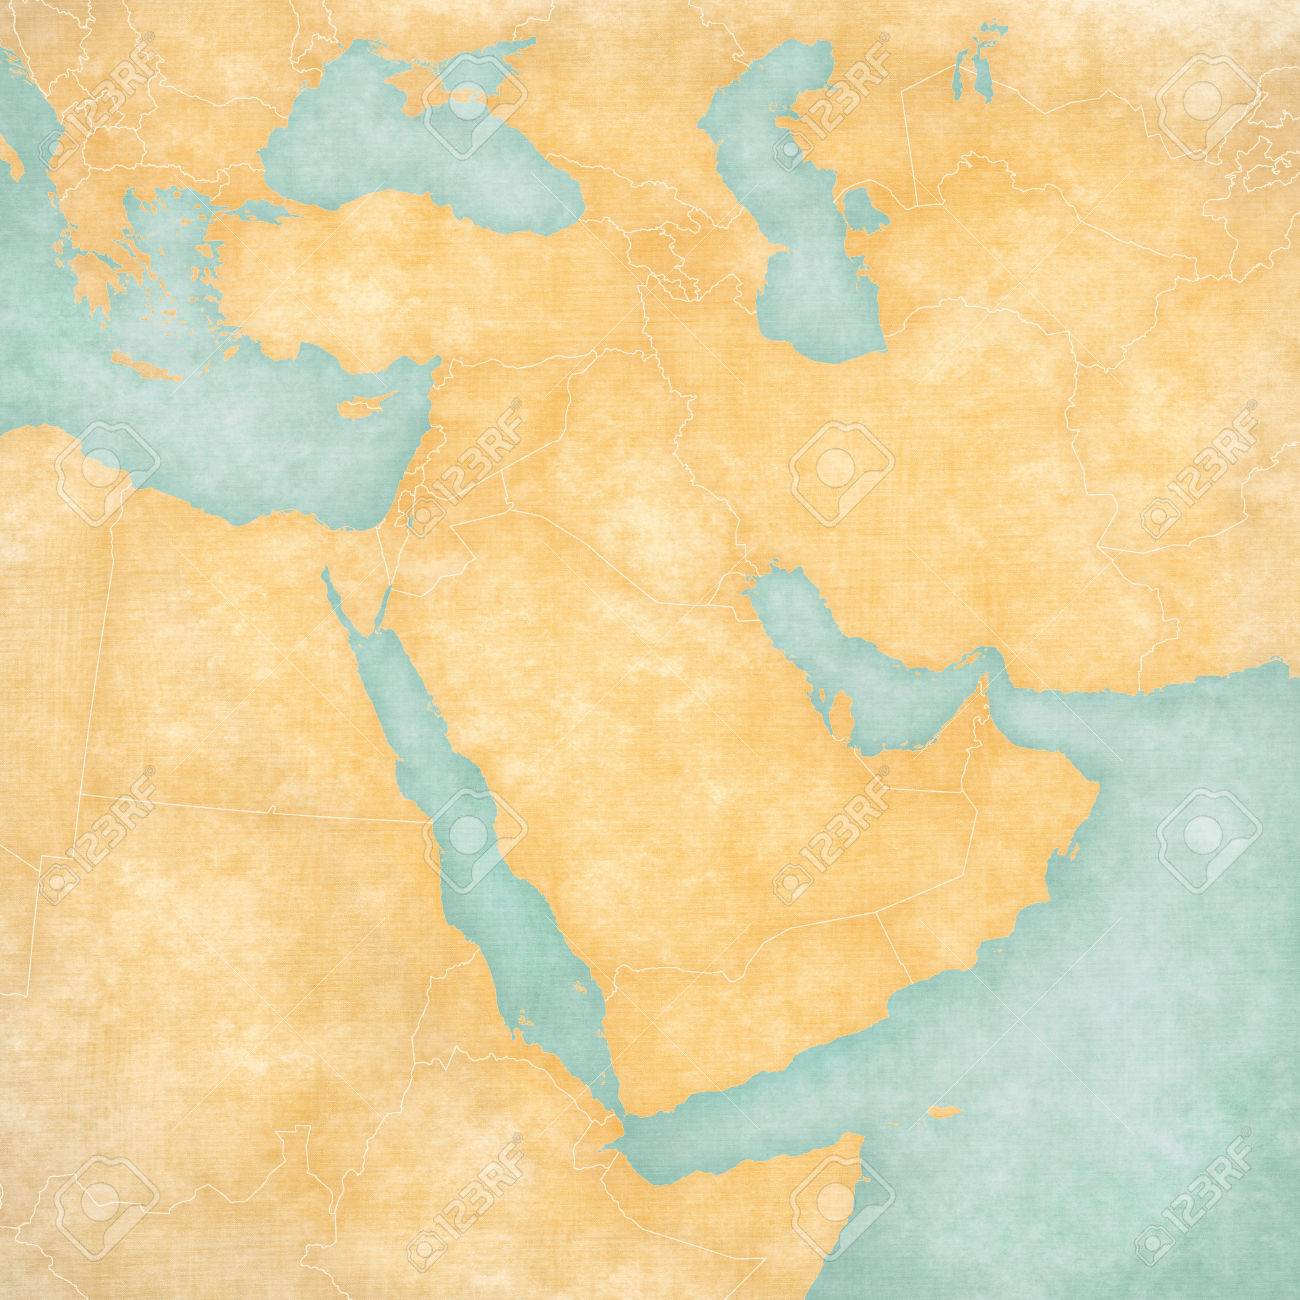 Blank Map Of Middle East Western Asia With Country Borders In Soft Grunge And